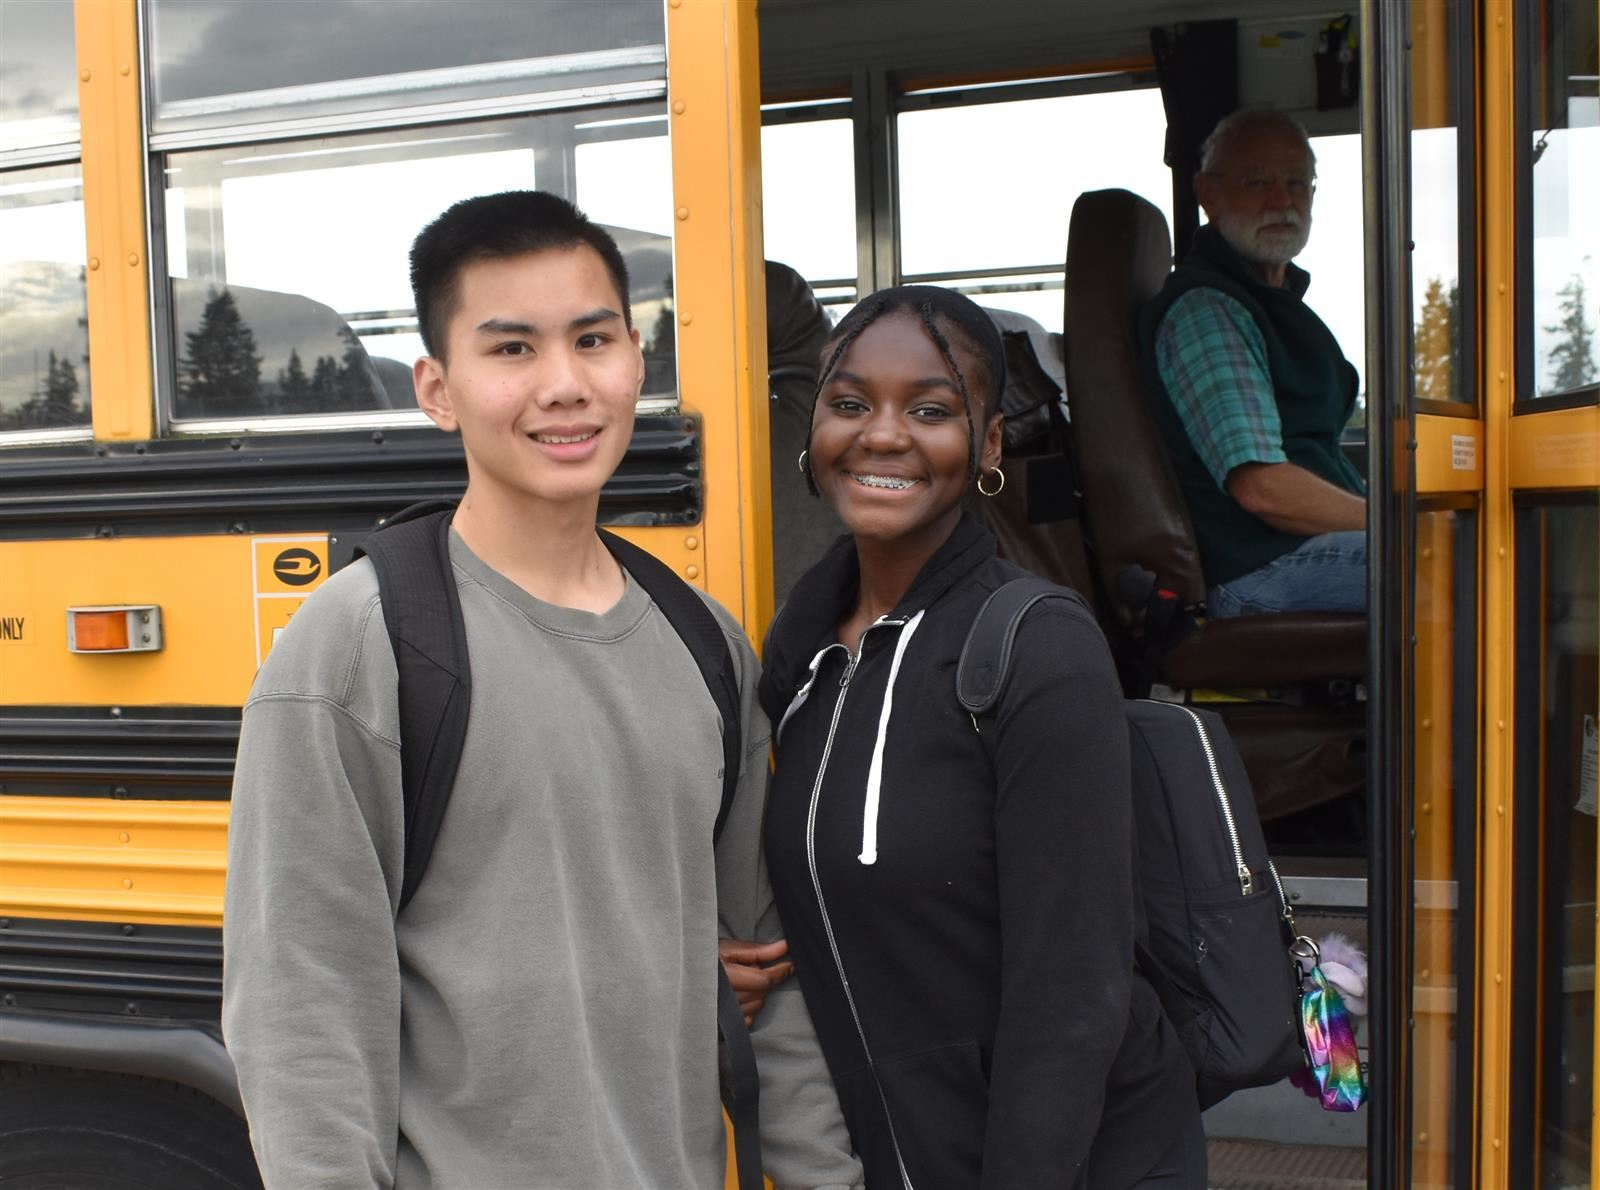 Two students posing in front of a bus.